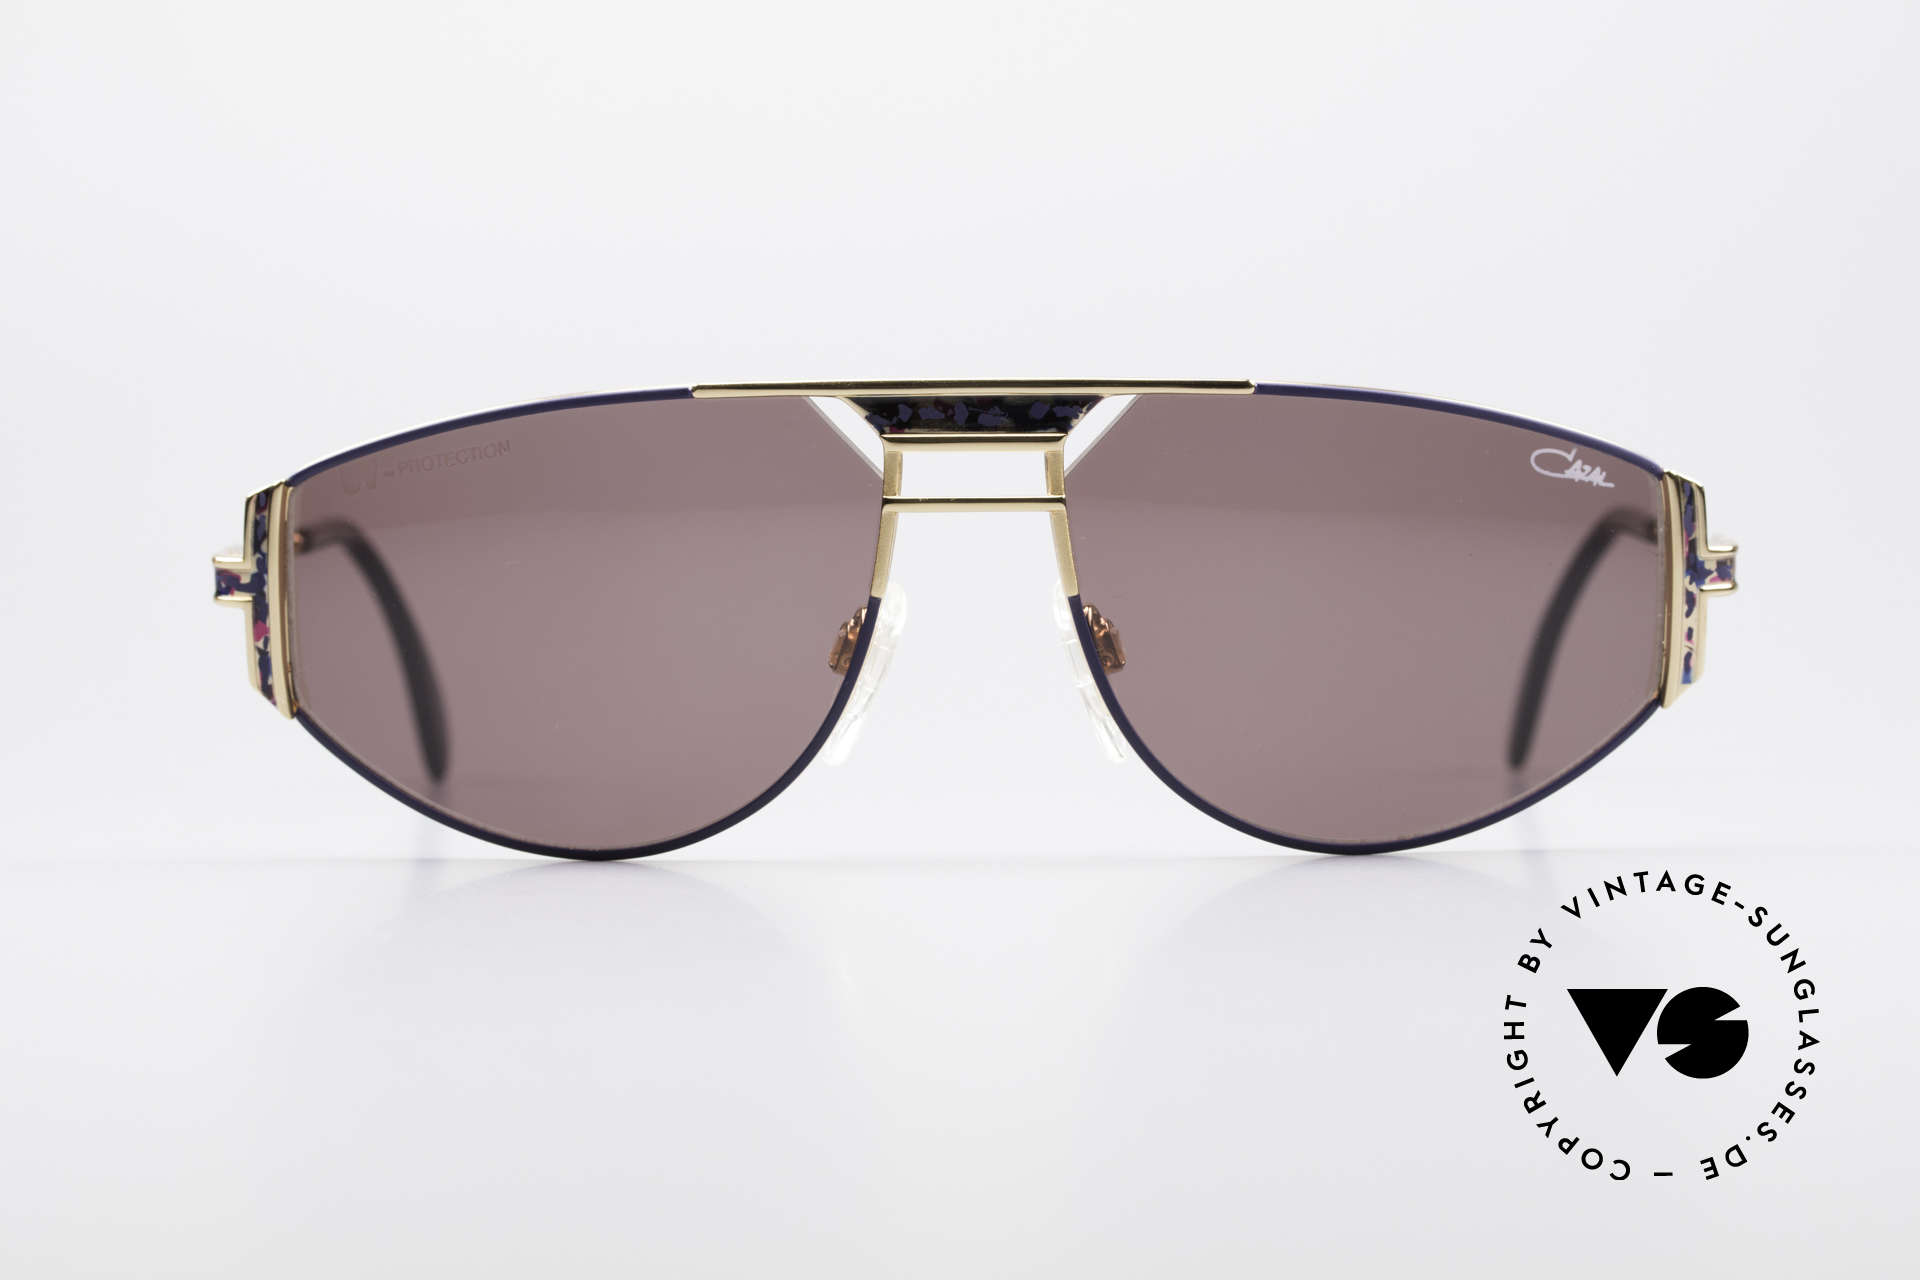 Cazal 964 True Vintage 90s Sunglasses, best craftsmanship (made in Germany) with 100% UV, Made for Men and Women